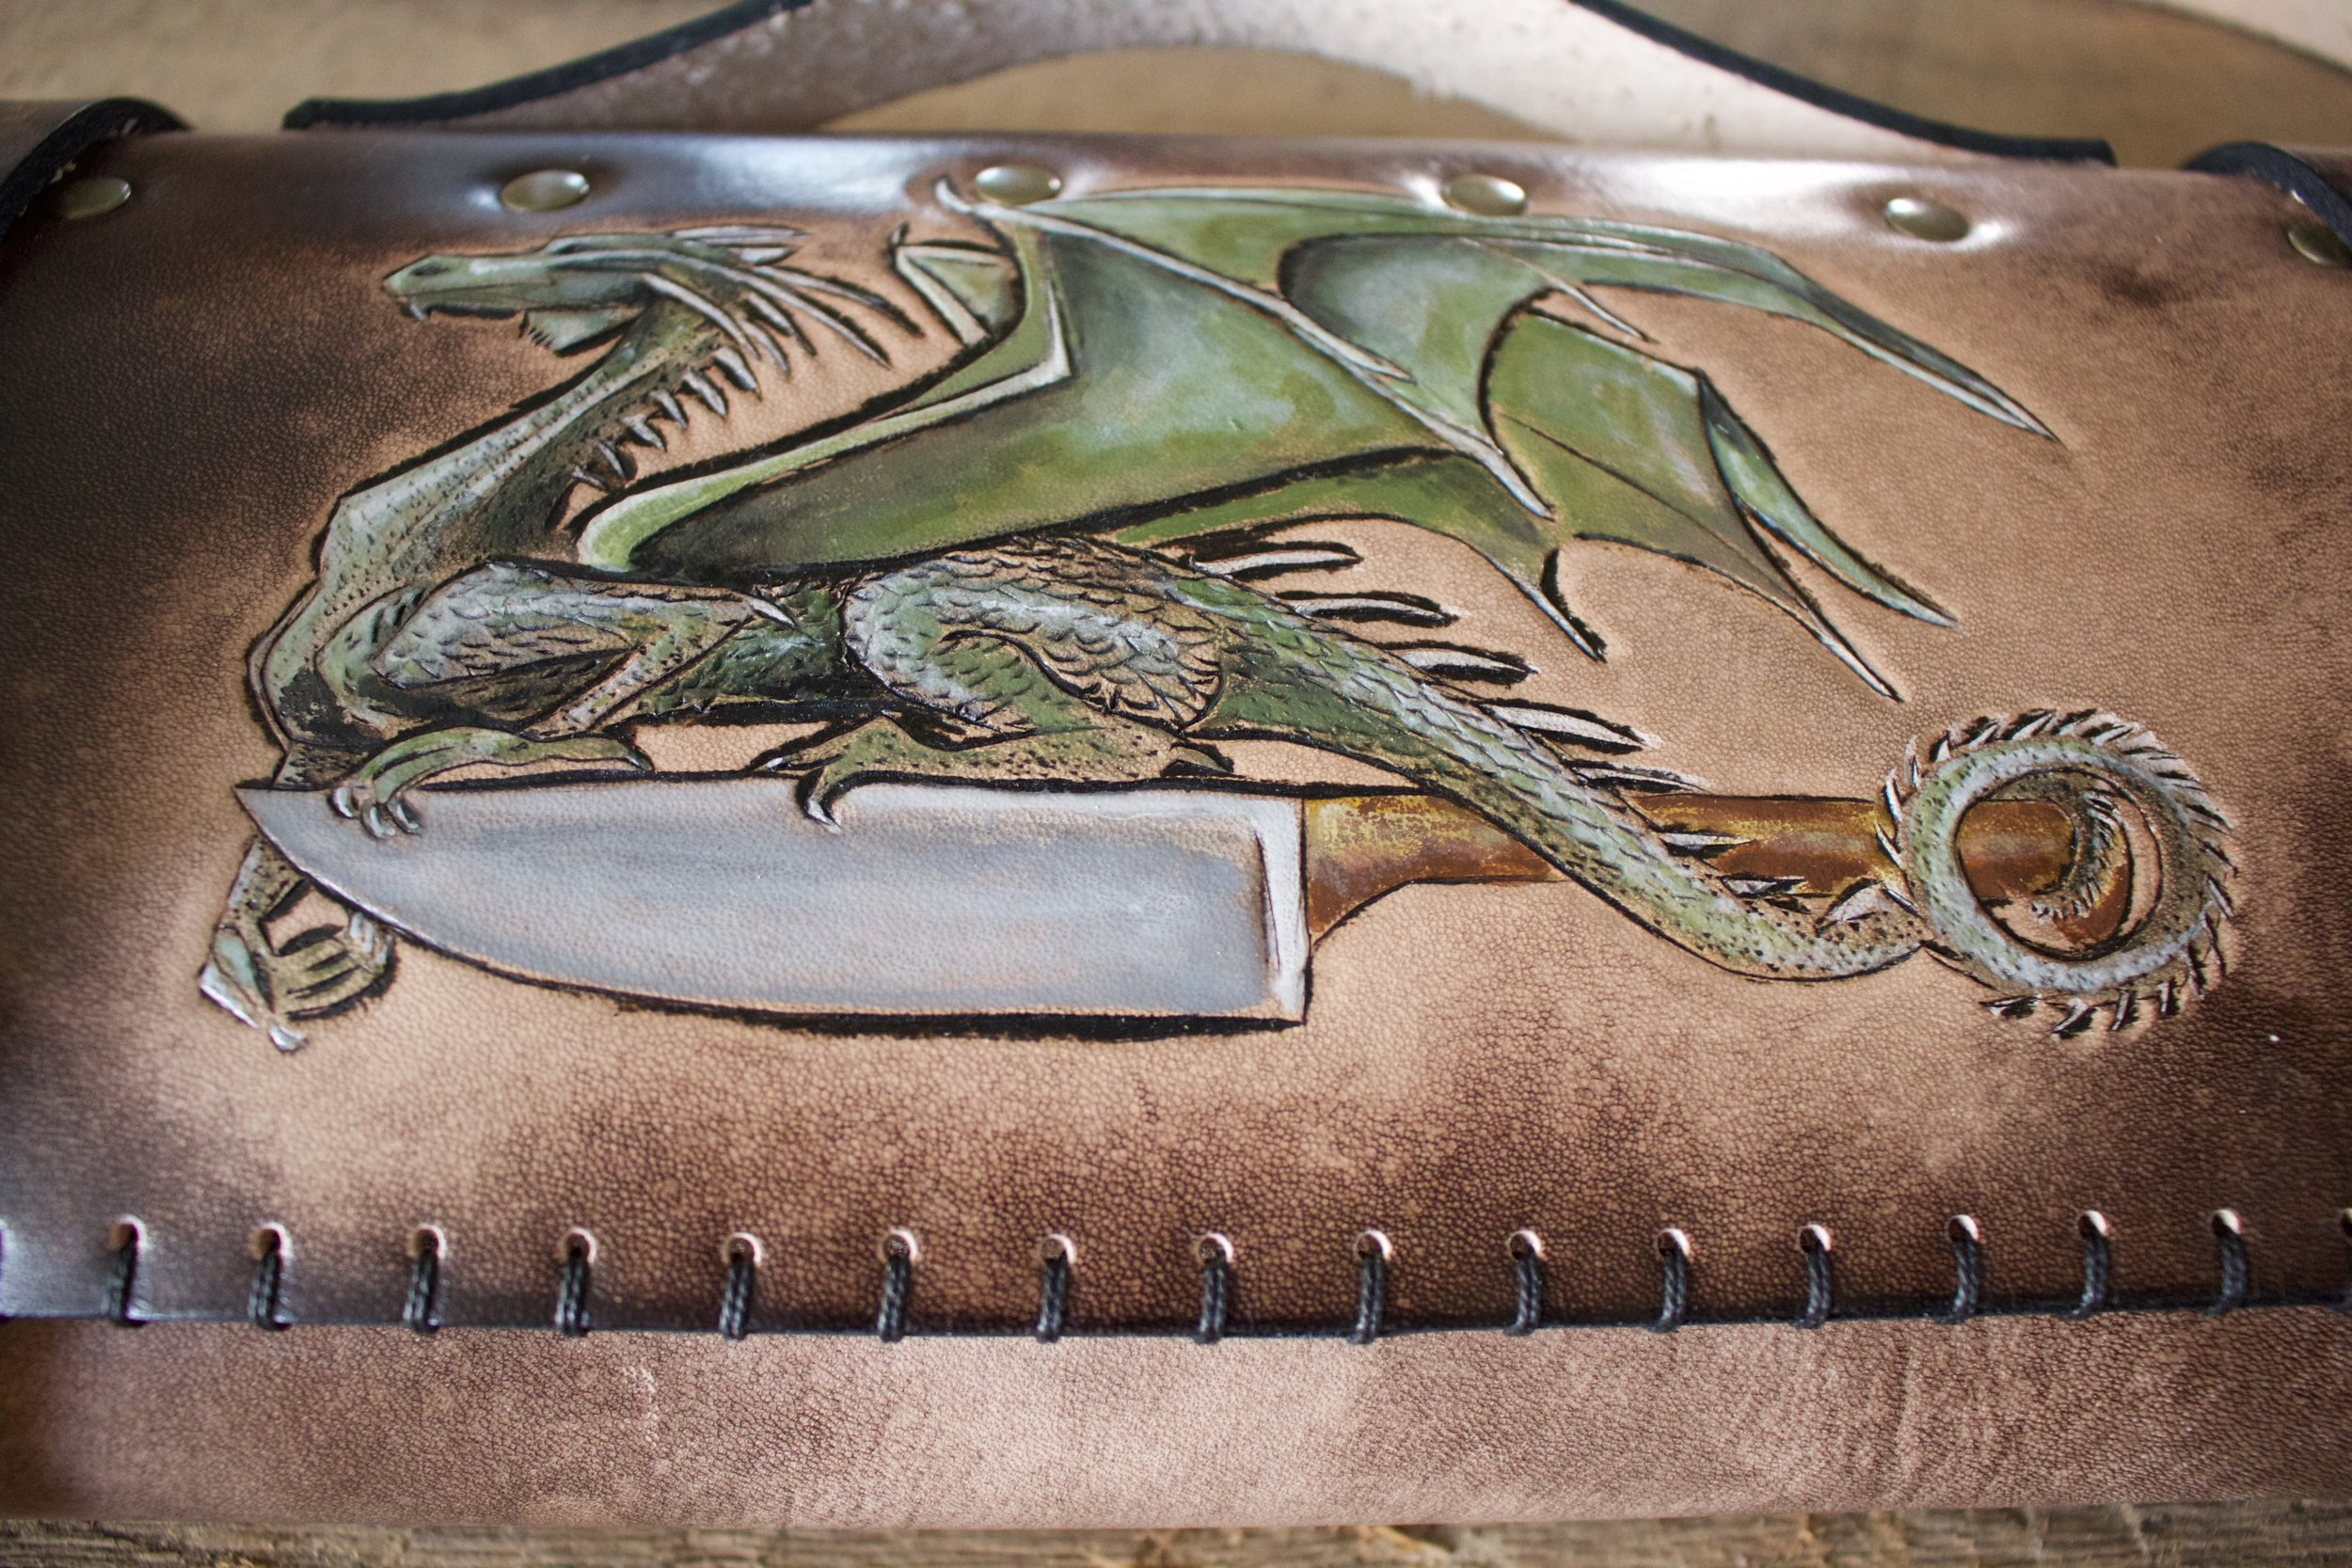 Dragon Knife Roll 5.jpg